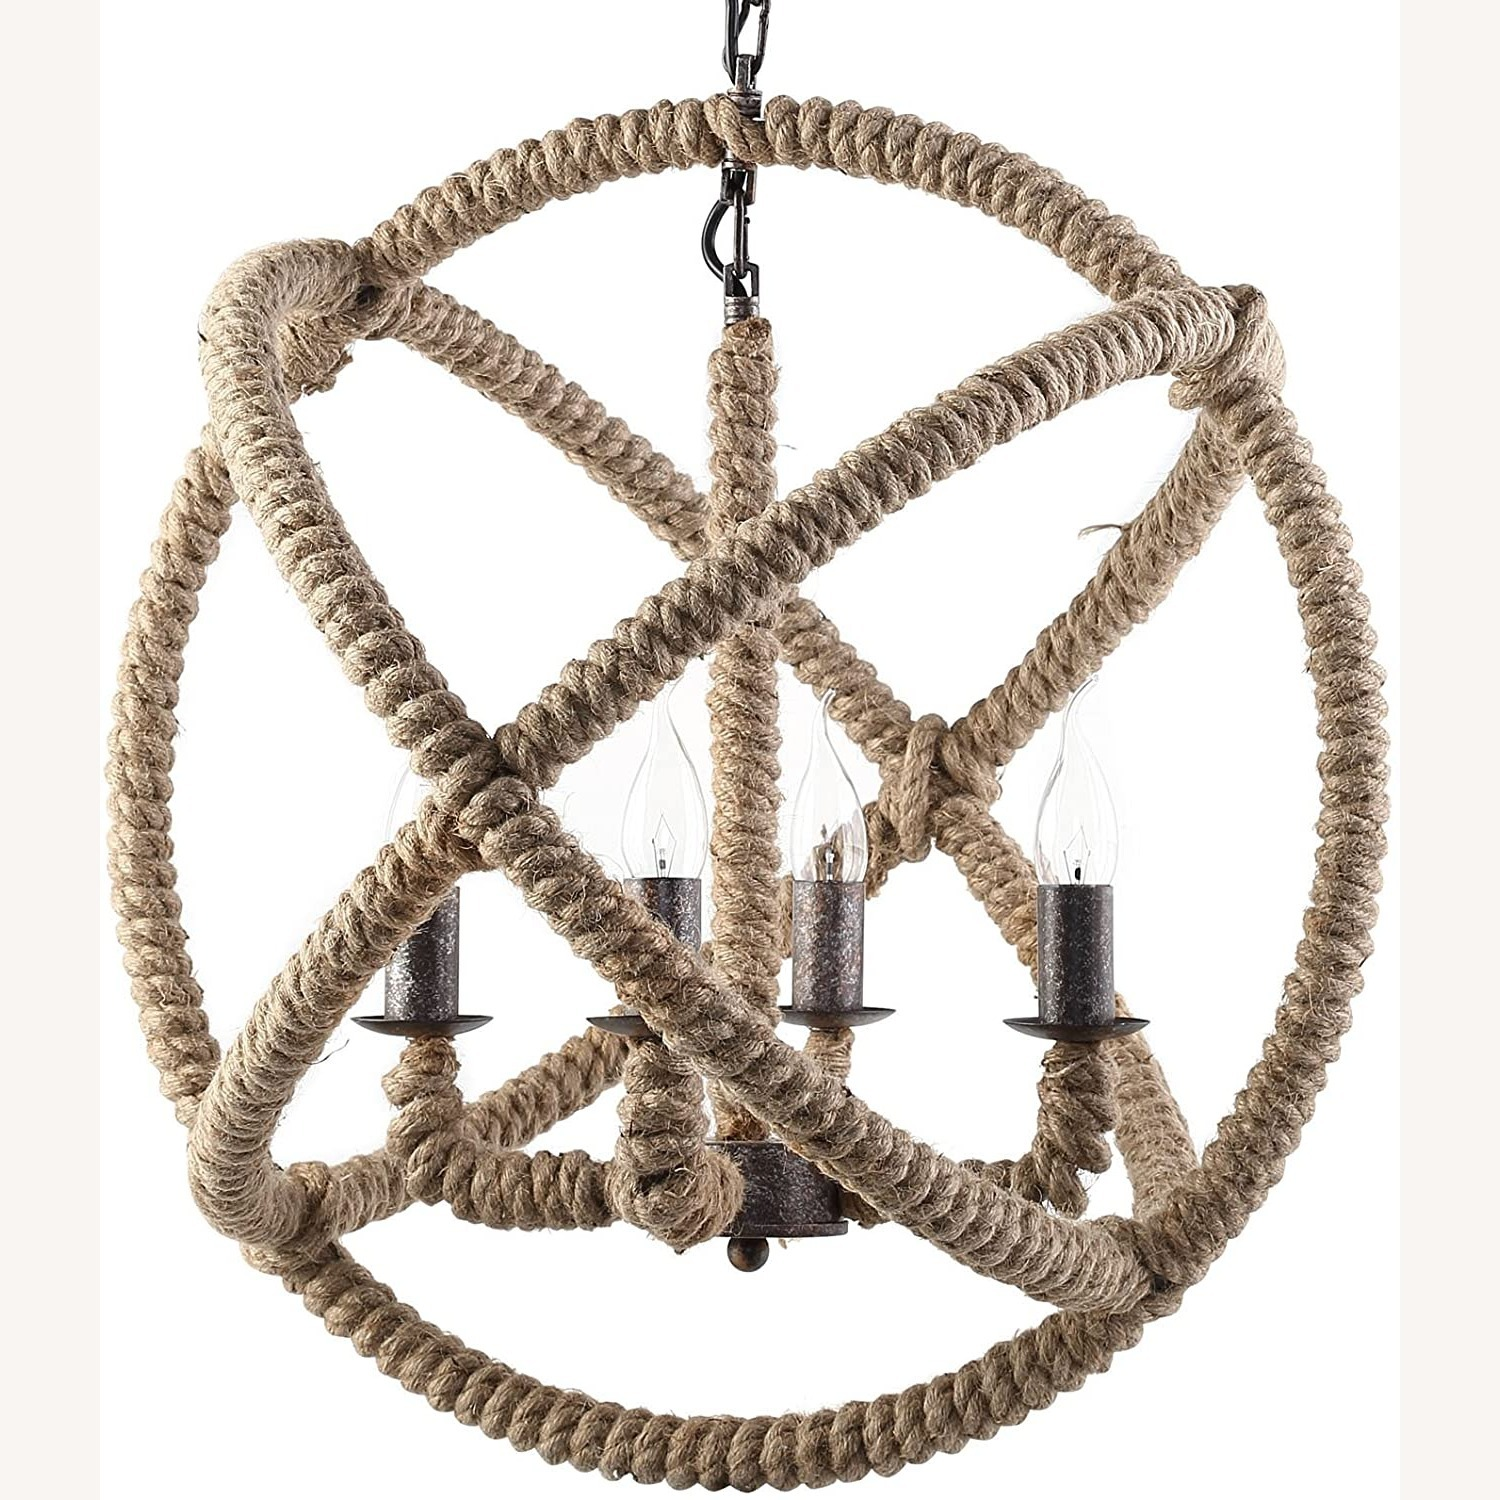 Modern Chandelier In Brown Rope Construction - image-1